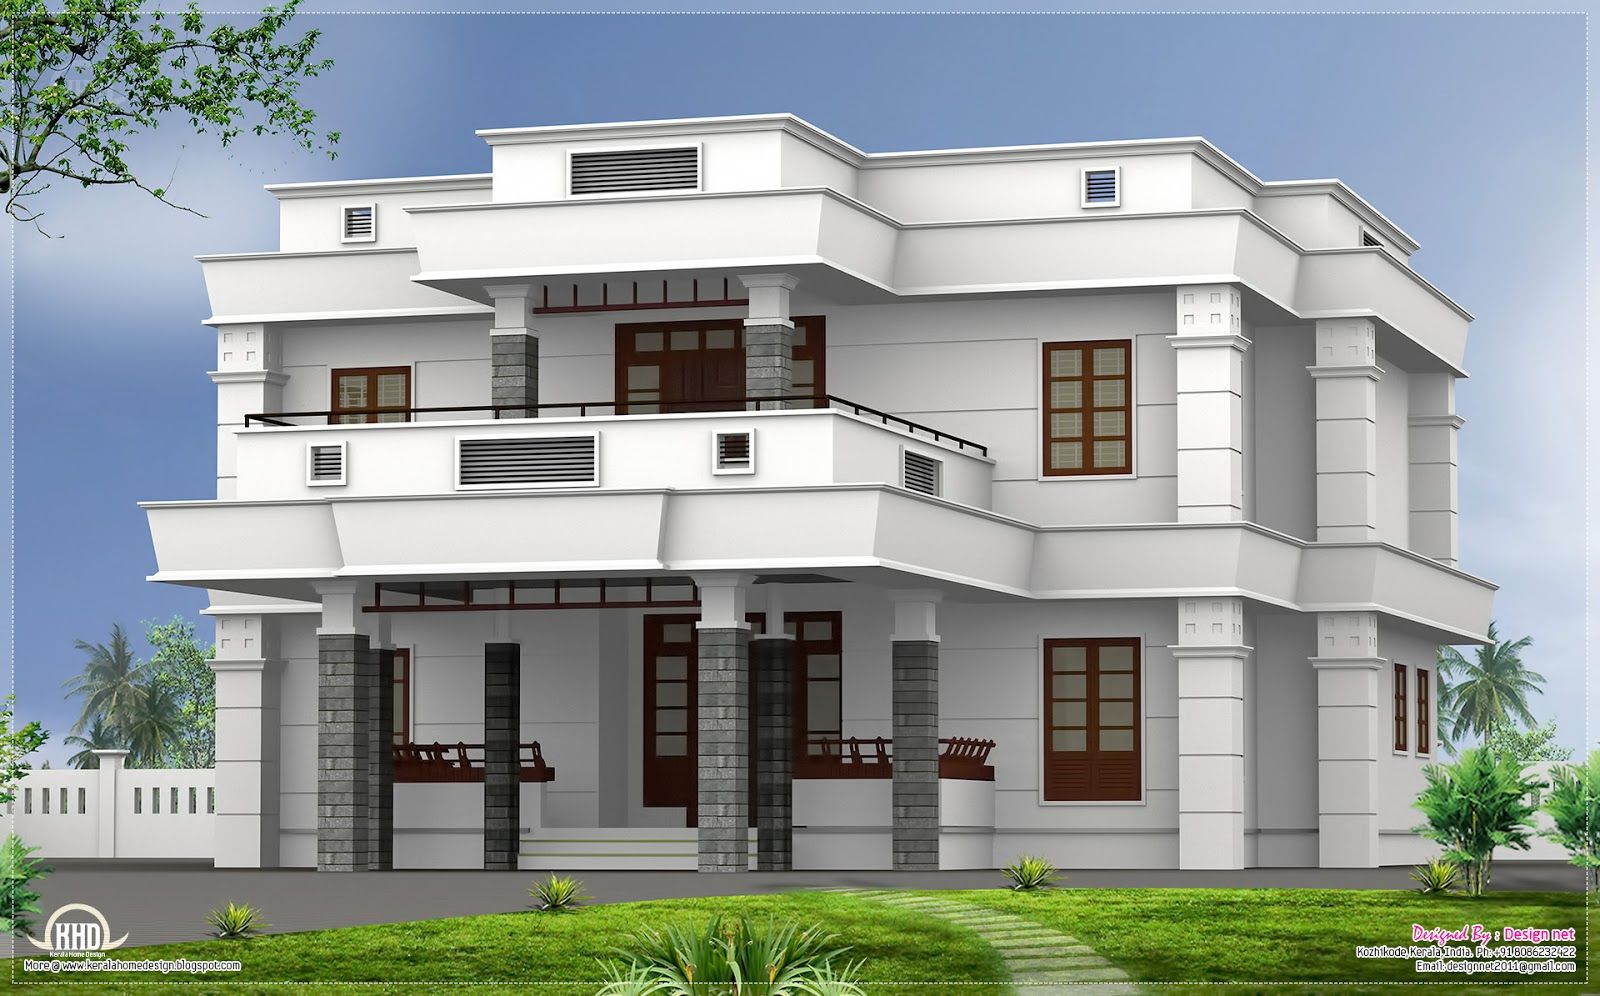 Flat roof homes designs bhk modern flat roof house for Kerala modern house designs